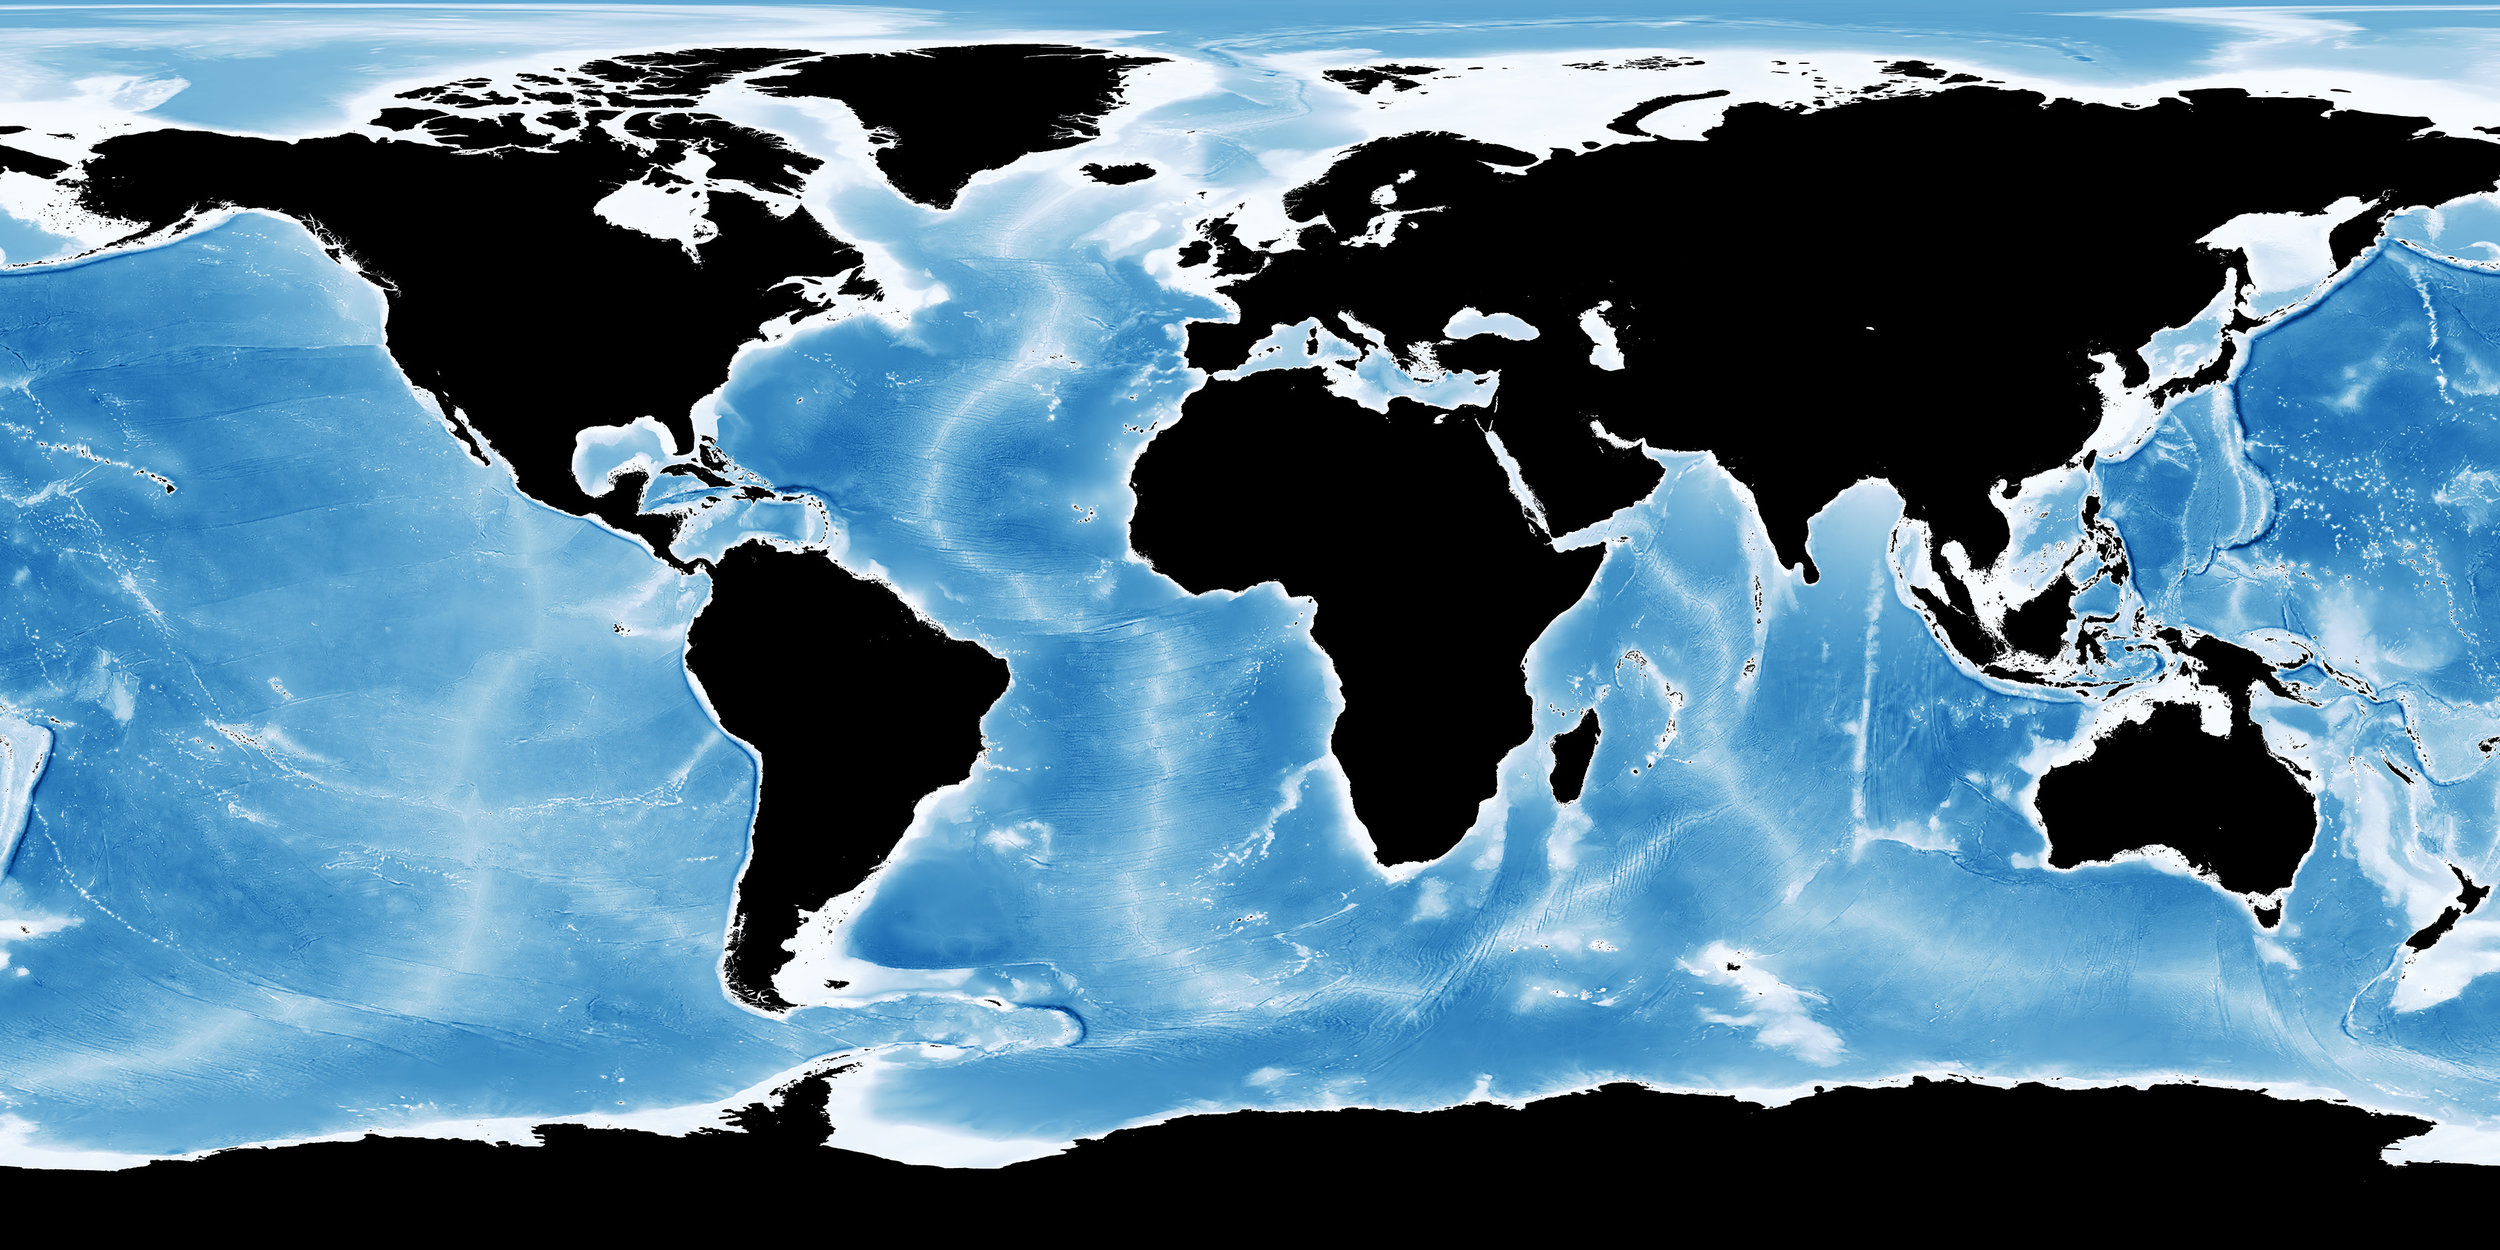 Bathymetry image from NASA showing a digital image of water depth where shading shows changes in slope or depth.  Credit: Imagery by Jesse Allen,  NASA's  Earth Observatory, using data from the General Bathymetric Chart of the Oceans (GEBCO) produced by the British Oceanographic Data Centre.